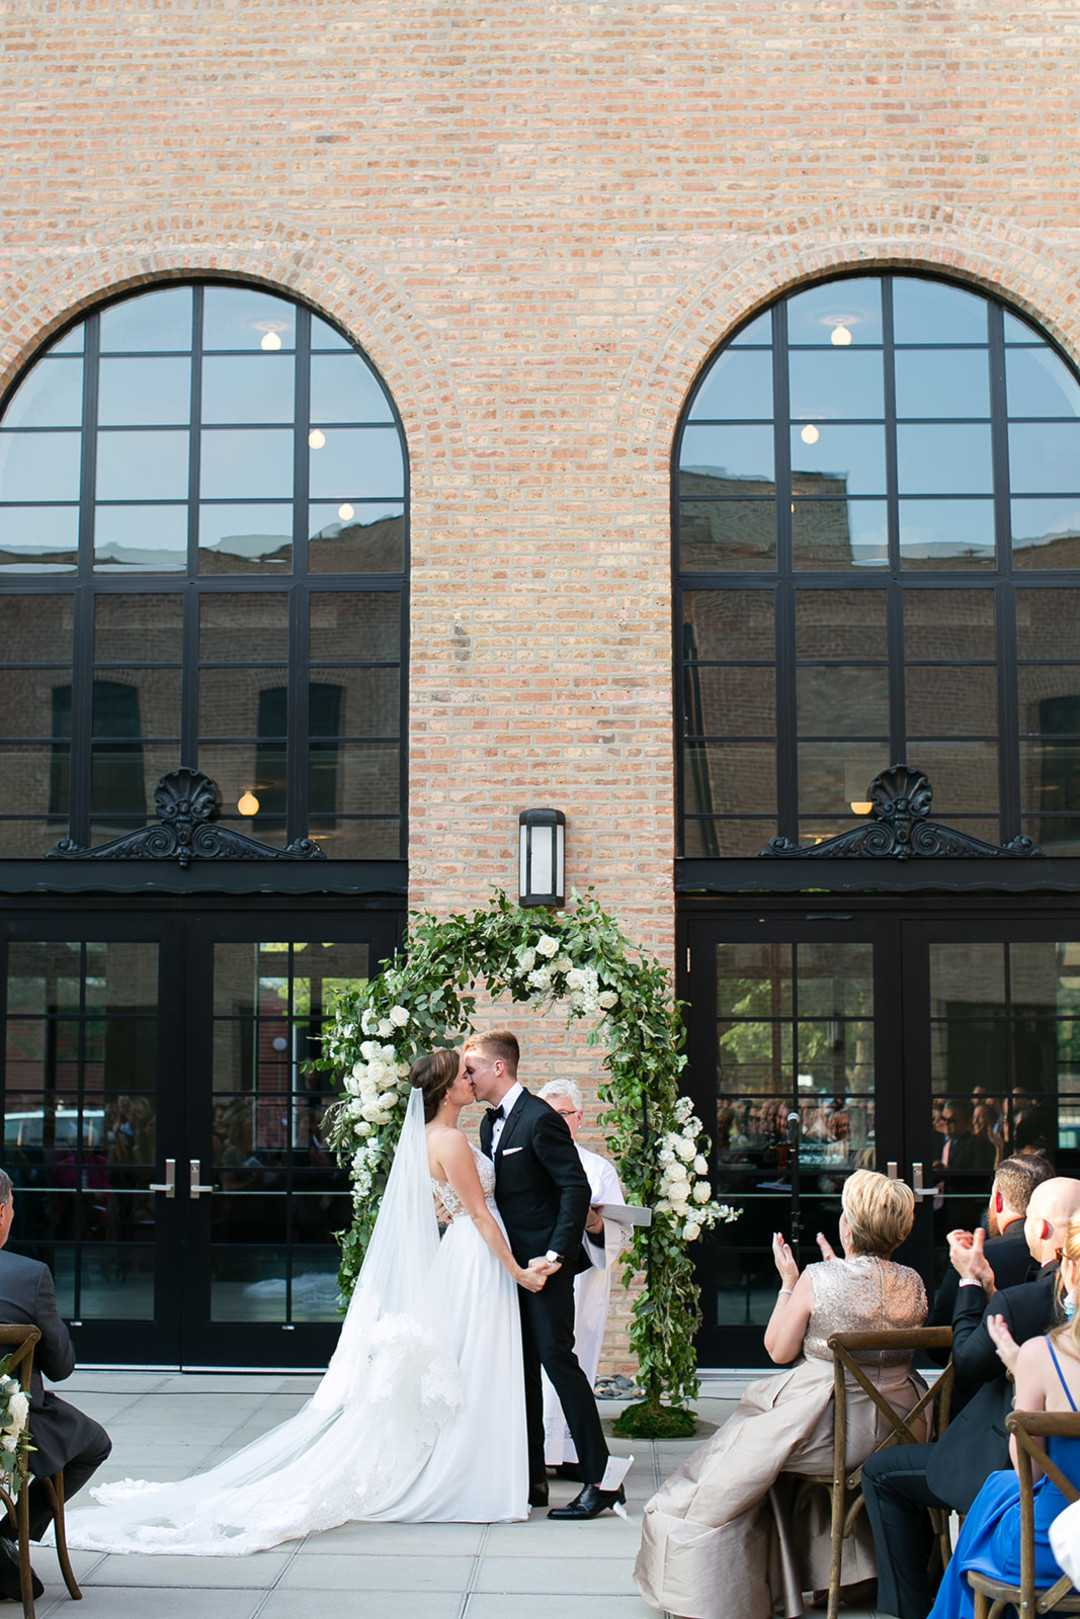 Bride and Groom | 2 Over the Top Rooftop weddings | Kate Aspen